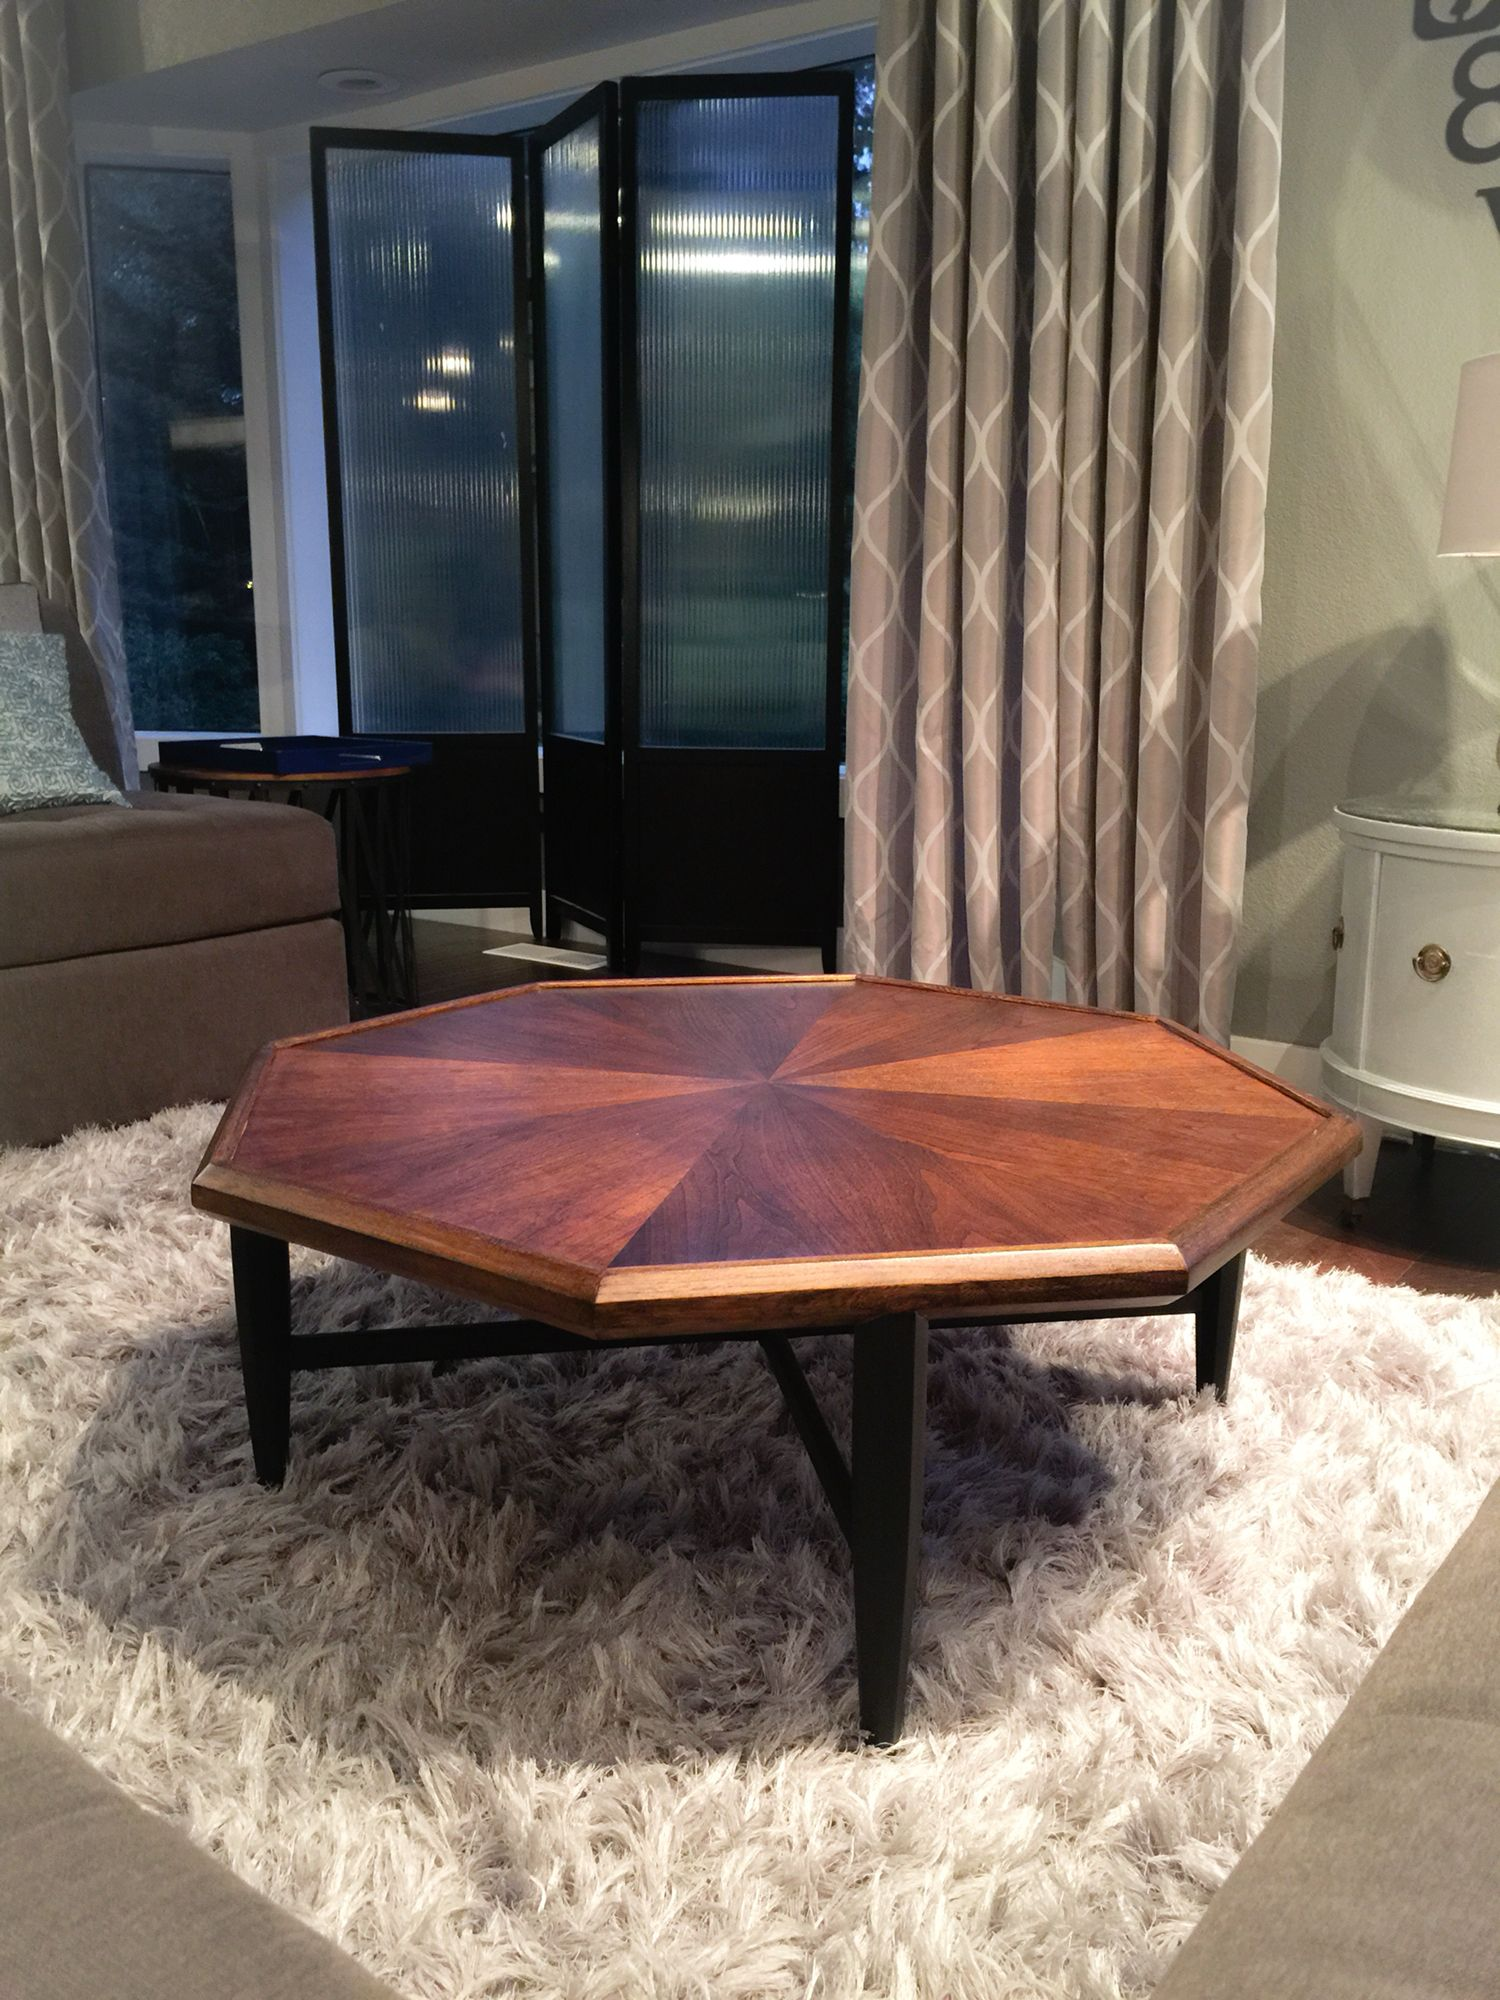 Lane Octagon Coffee Table | Coffee table, Coffee table ... on Coffee Table Inspiration  id=17669